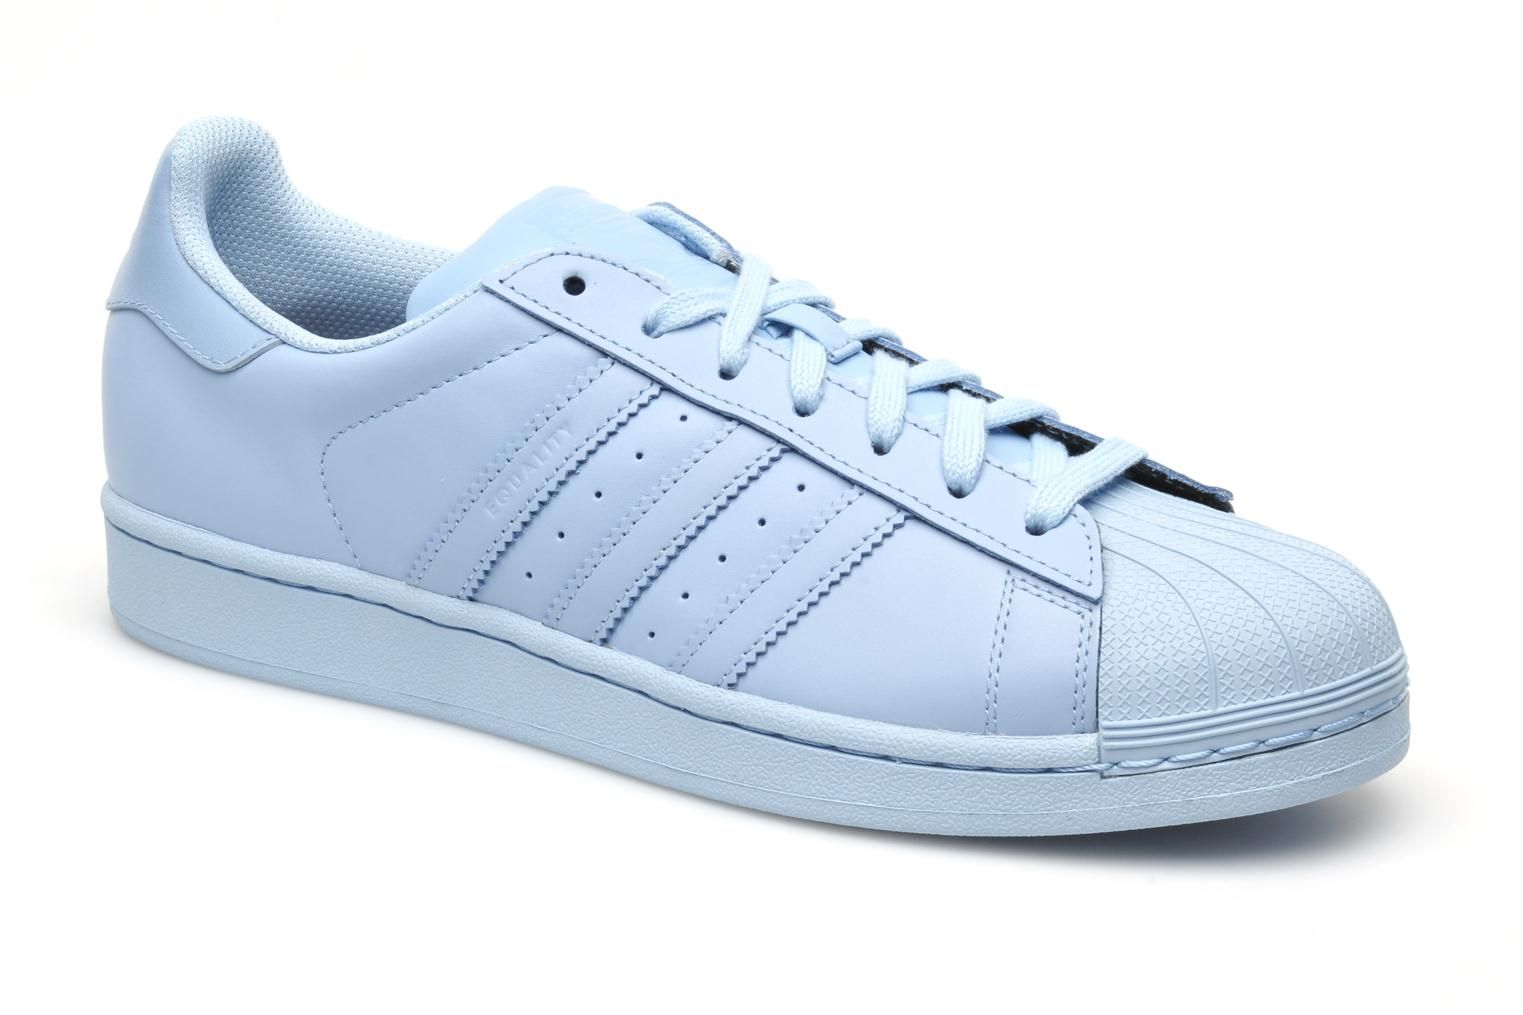 42e3a024f62 Adidas Originals Superstar Supercolor Bleu prix promo Baskets Femme Adidas  Sarenza 100.00 €